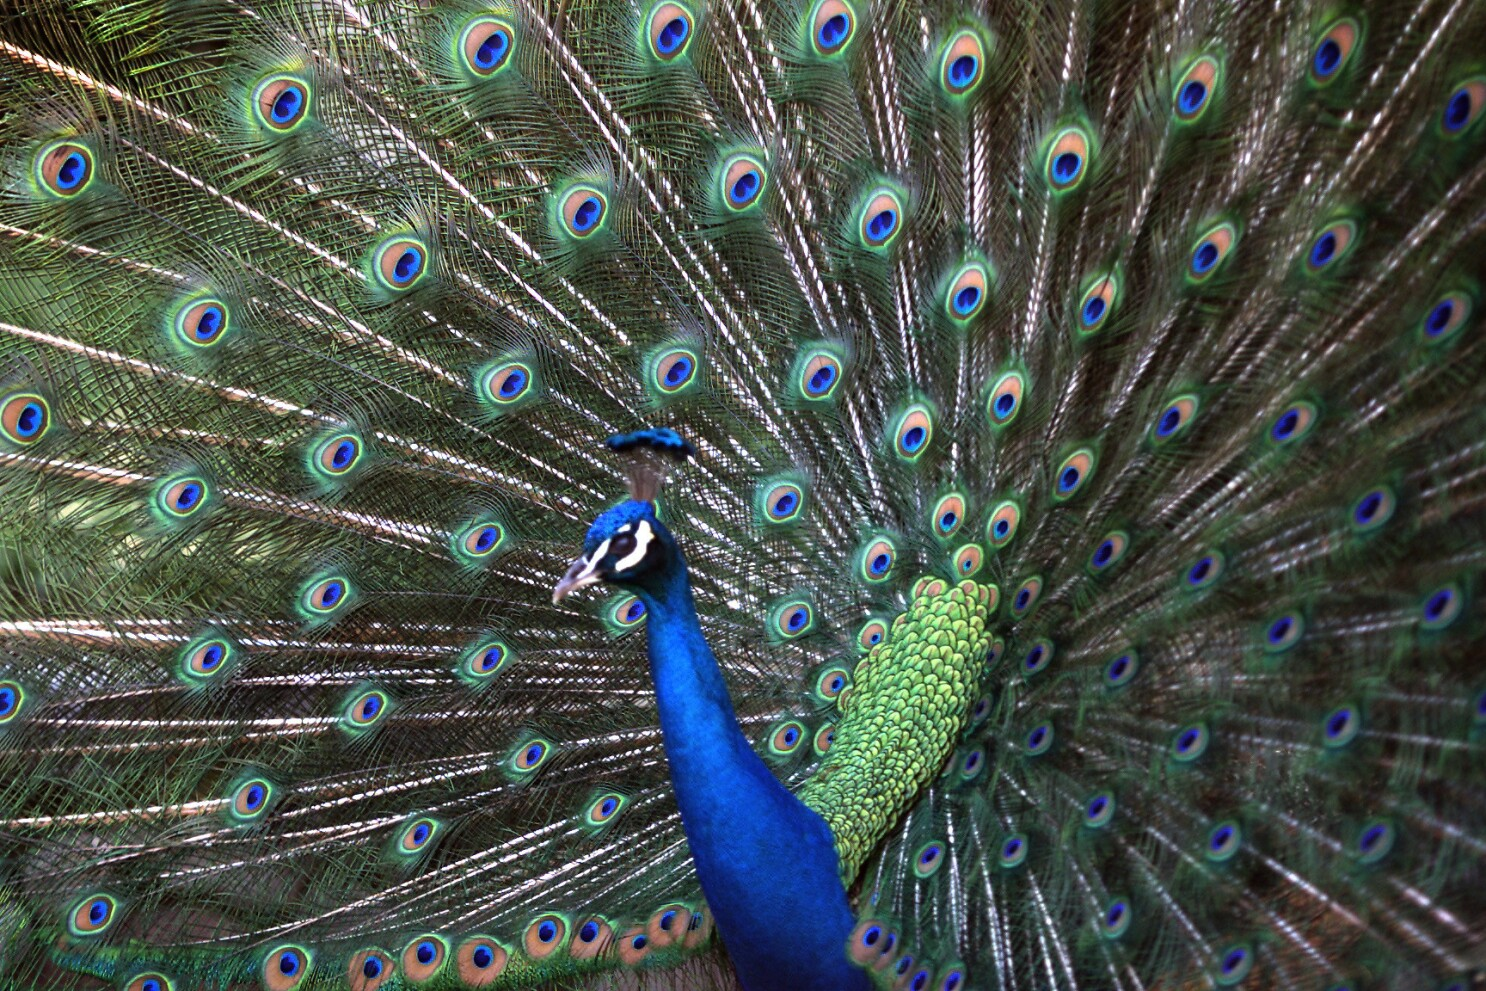 Chatsworth man accused of running over 2 peacocks with his pickup